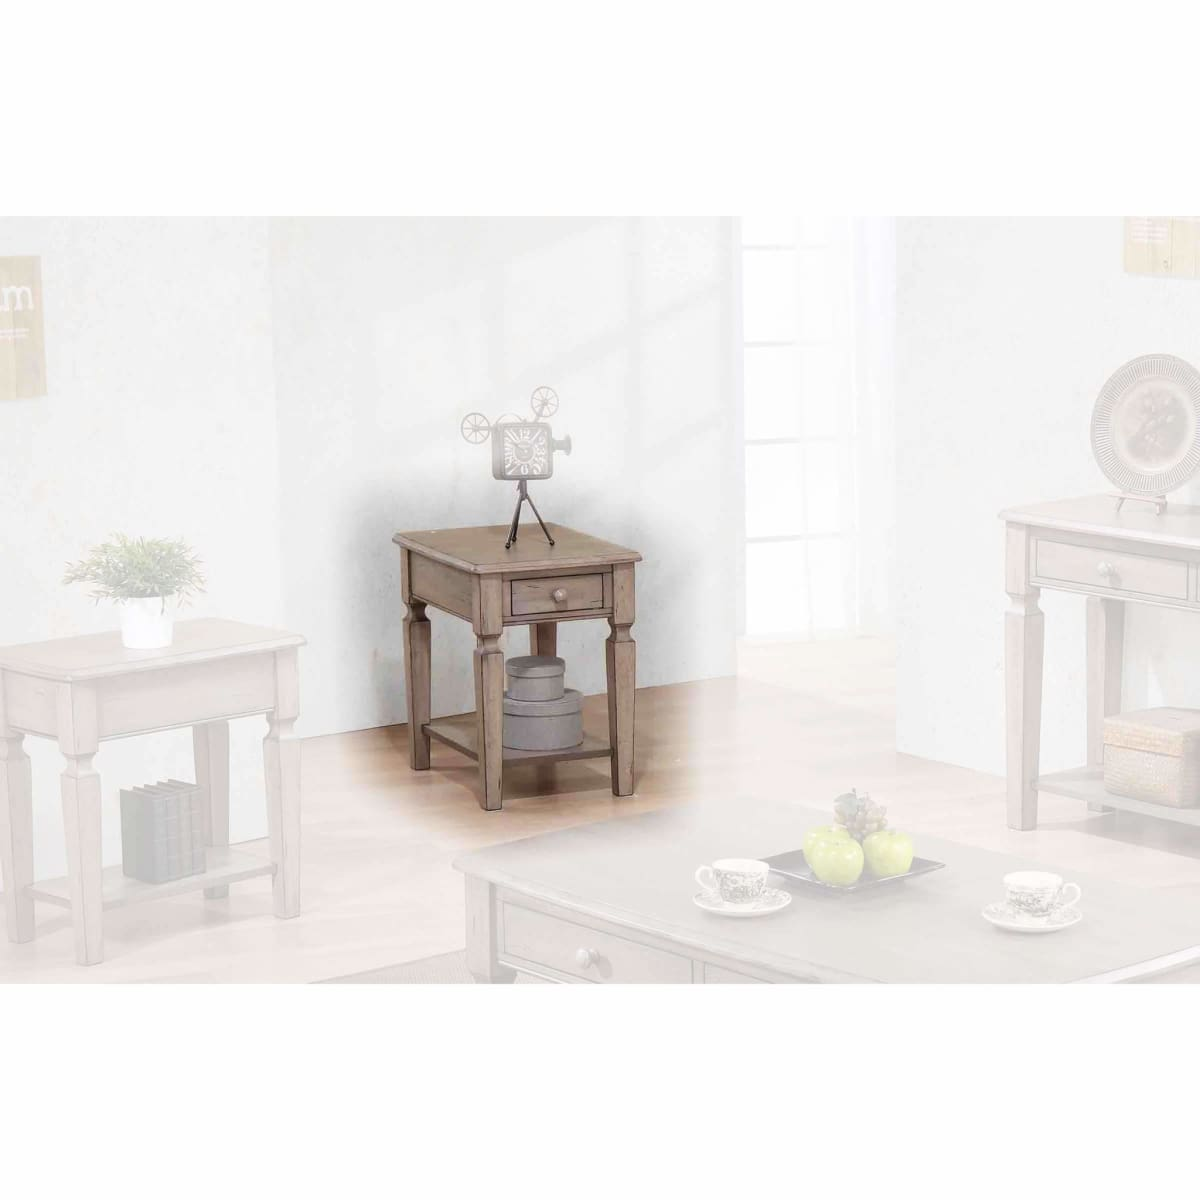 Ventura 18 End Table - END TABLE/SIDE TABLE